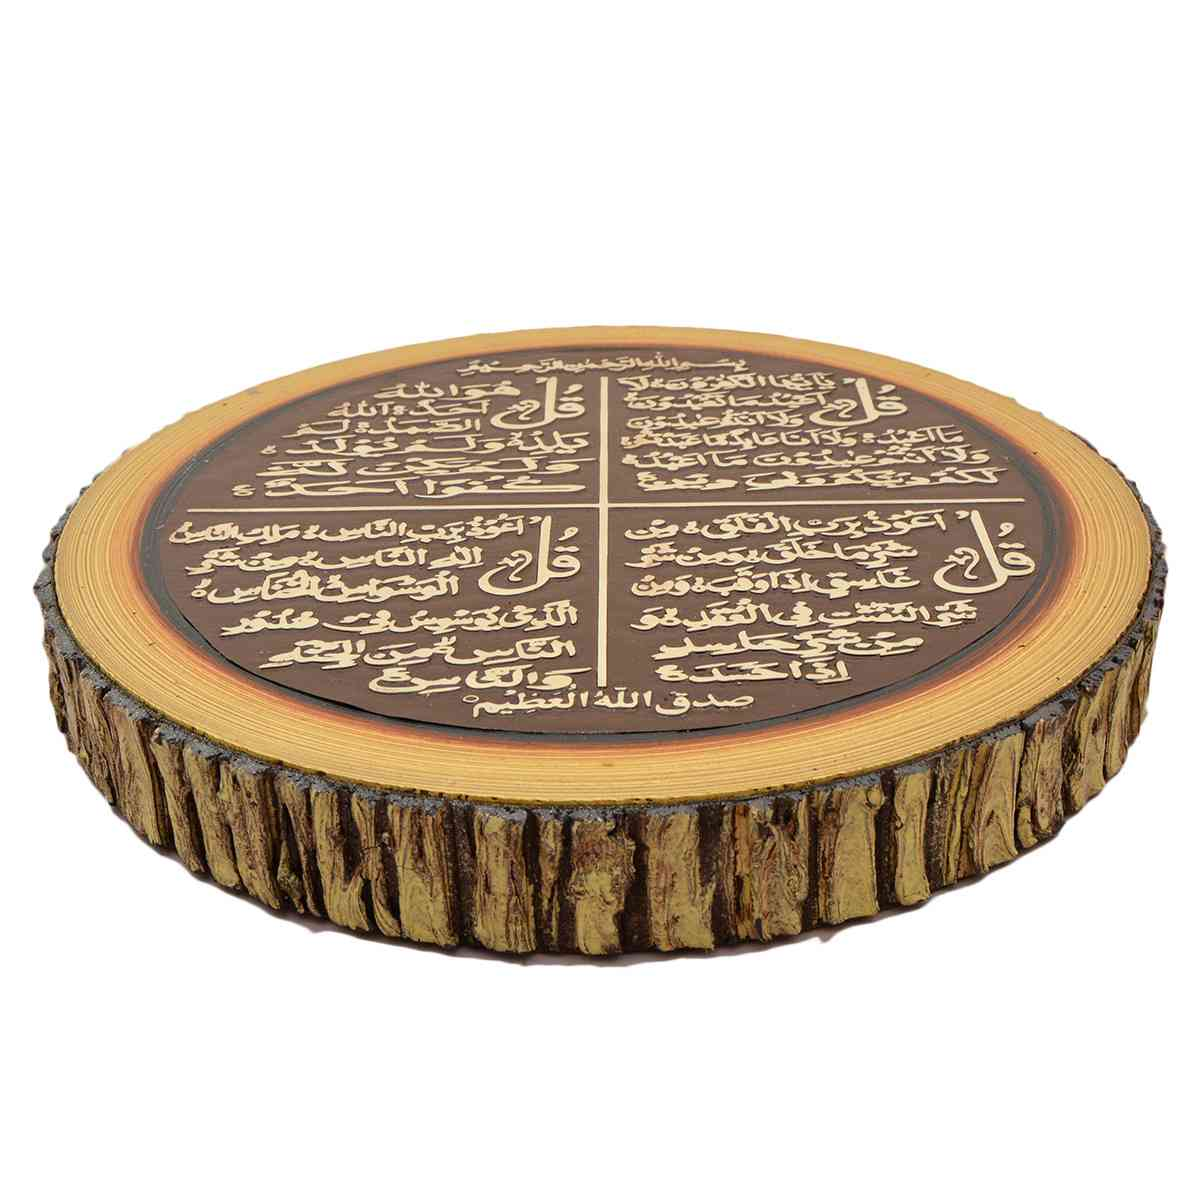 Wooden Calligraphy Frame for Room Decoration (Width 13 Inch x Height 13 Inch x Depth 1.5 Inch)